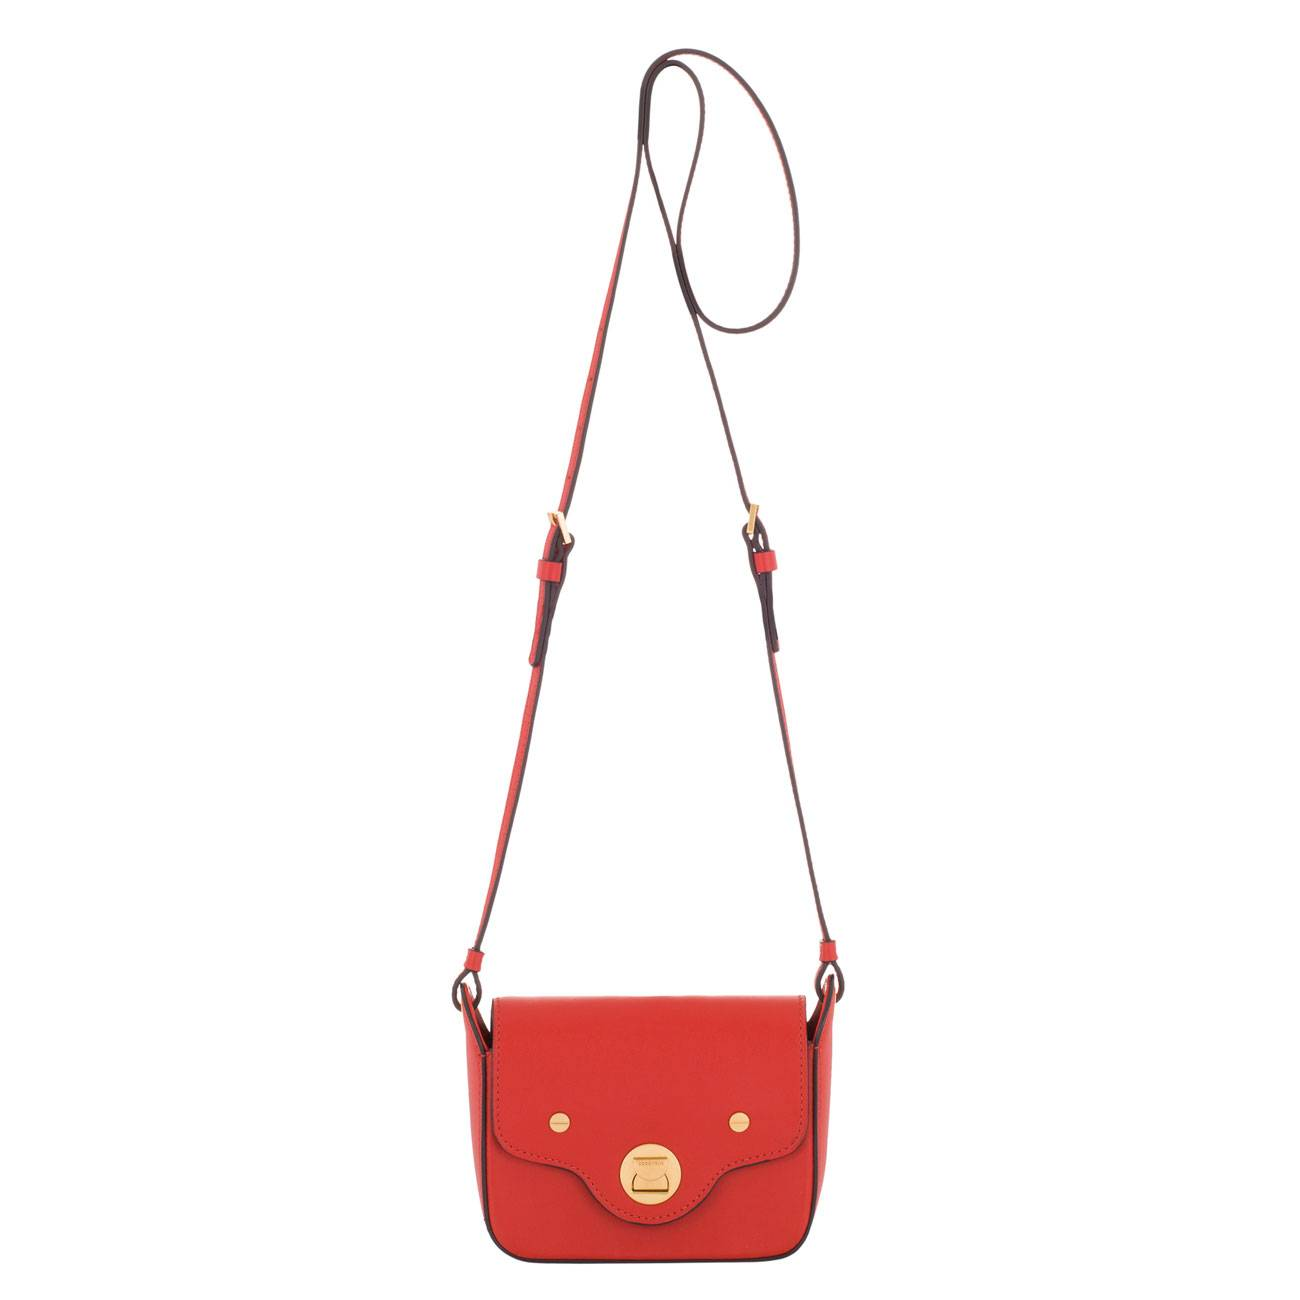 RED MINIBAG